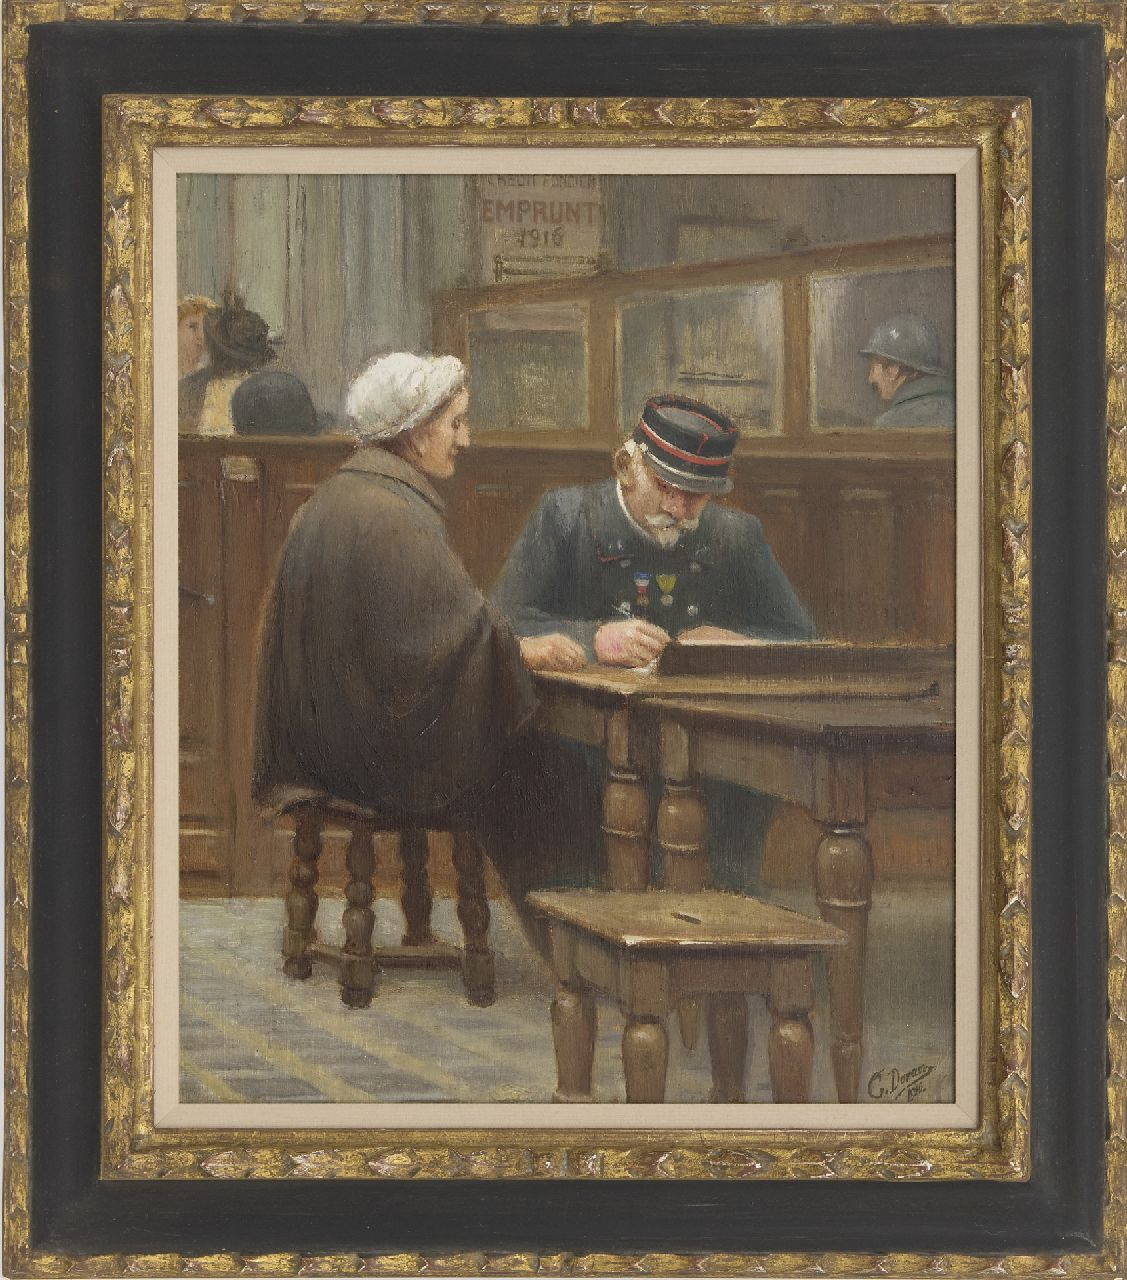 Duran G.  | Duran | Paintings offered for sale | At the mortgage bank, oil on panel 43.1 x 36.1 cm, signed l.r. and dated 1910